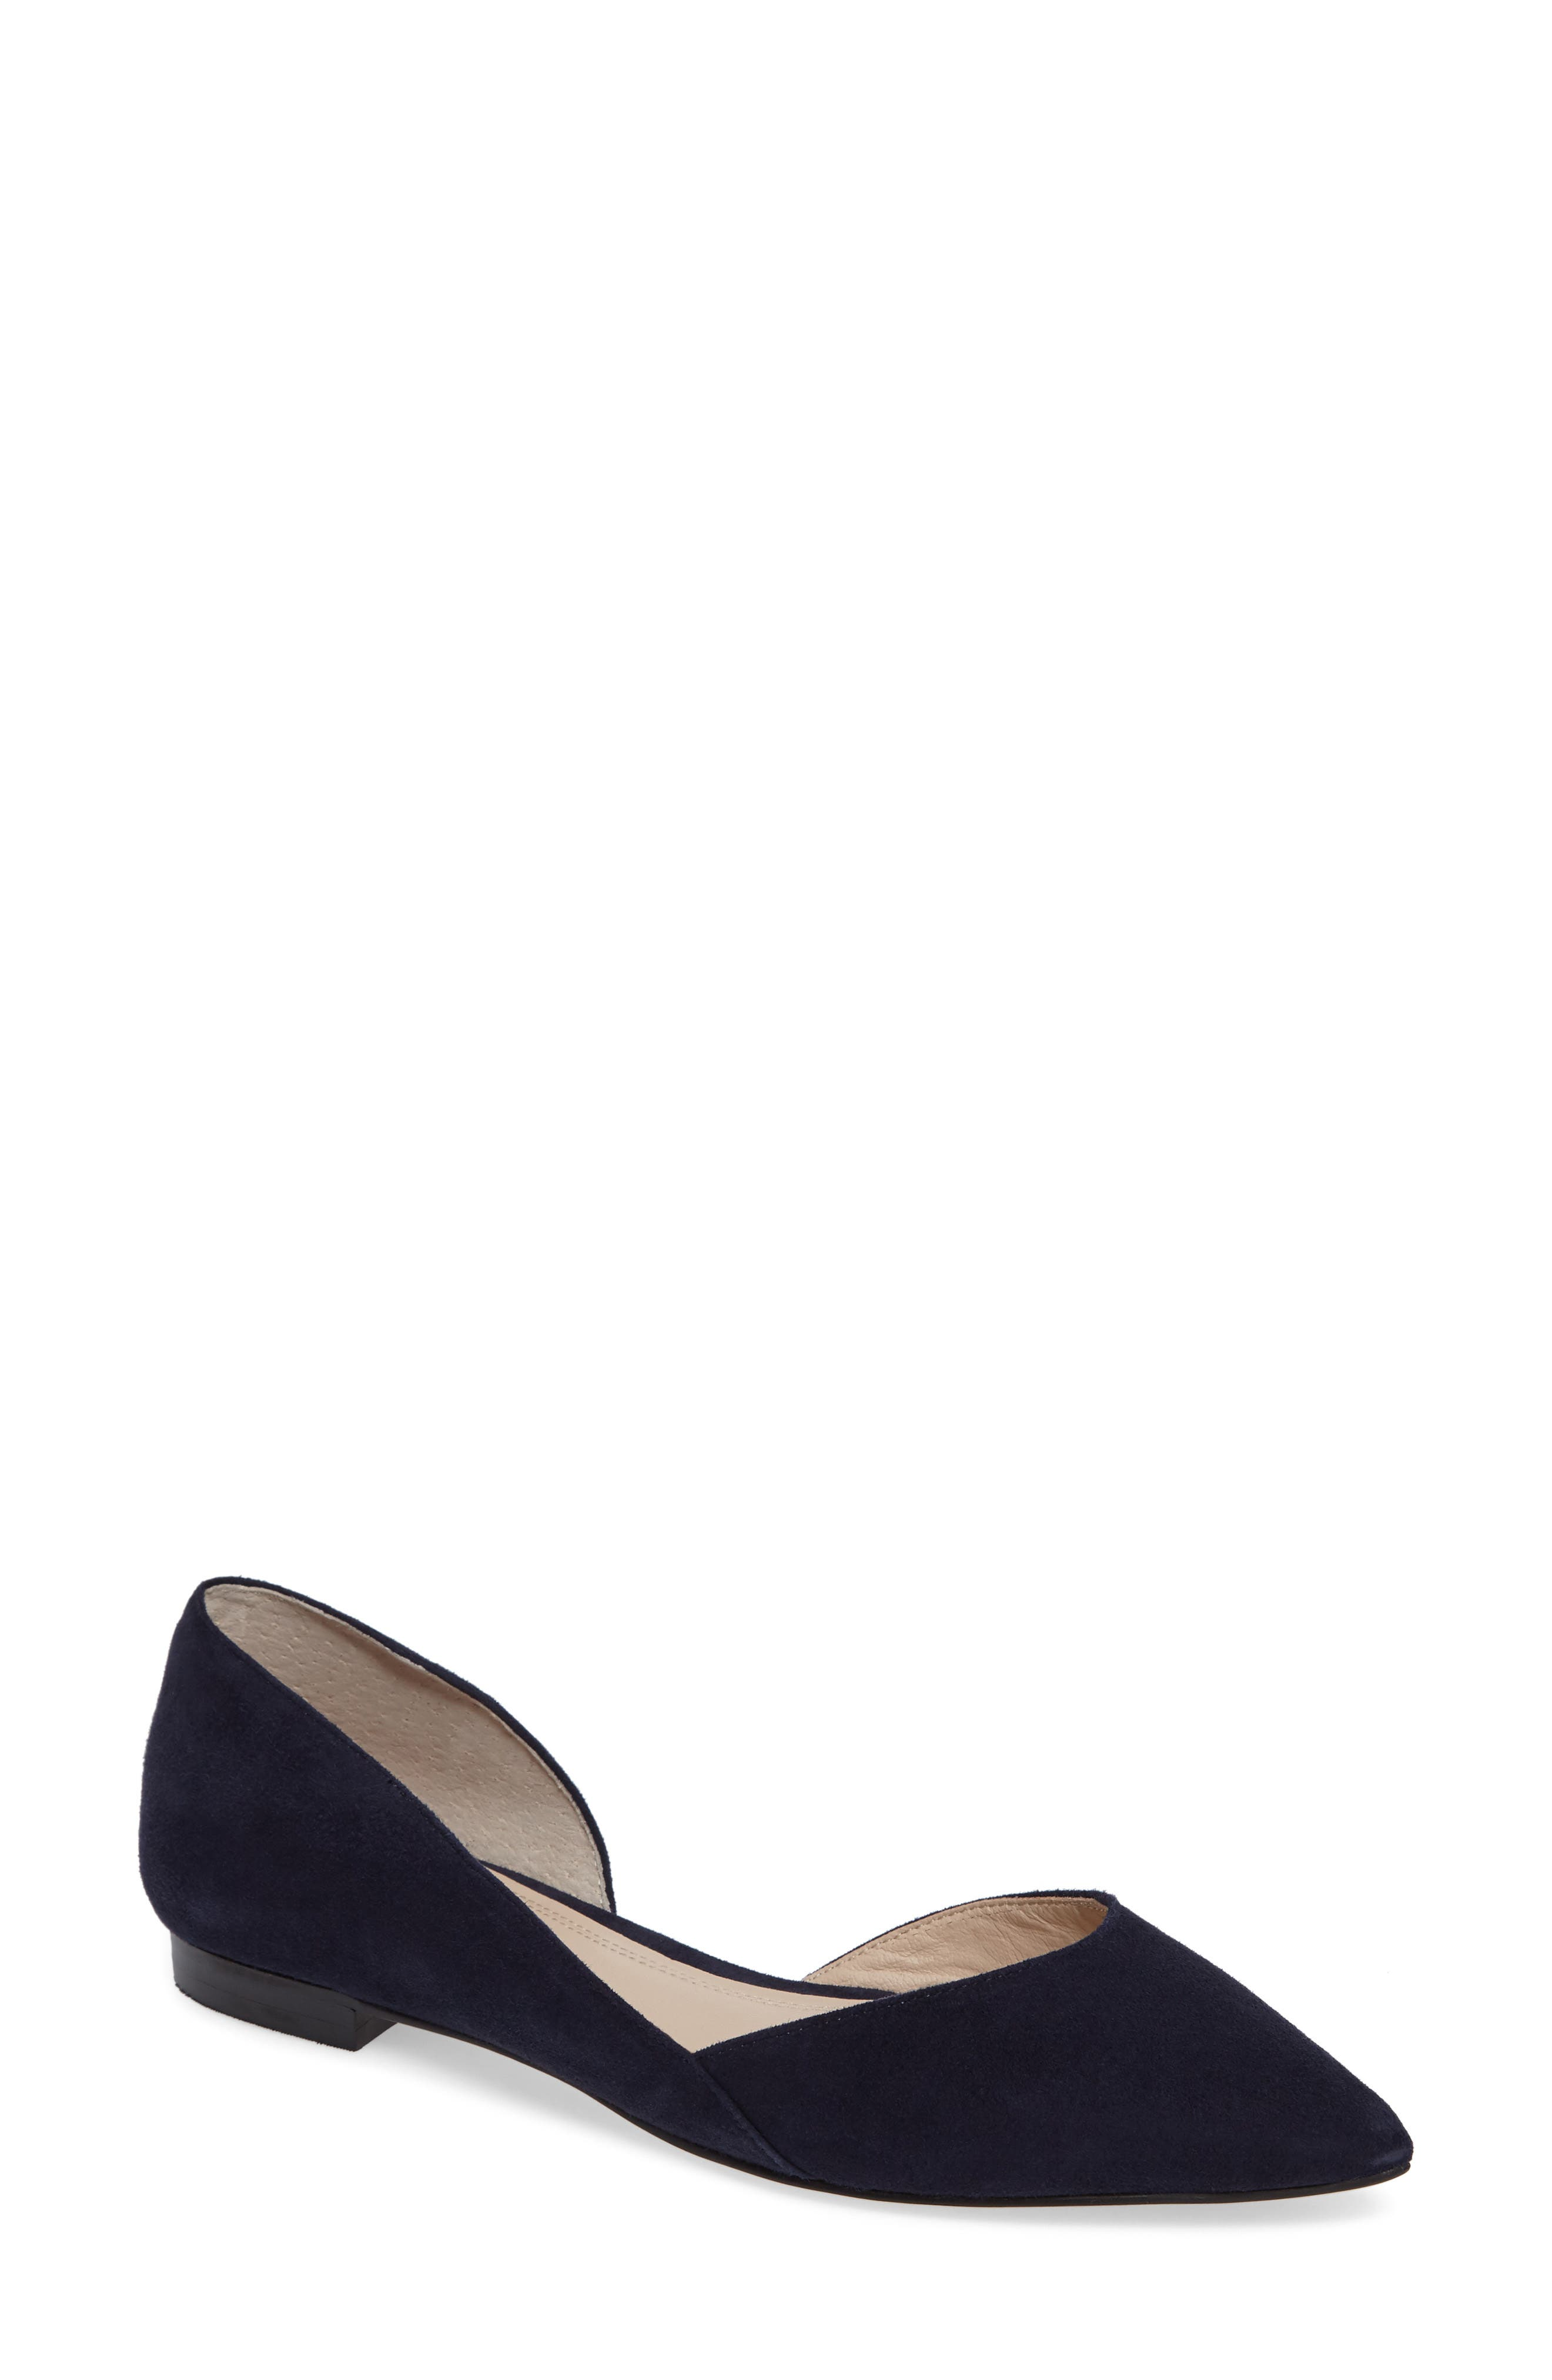 'Sunny' Half d'Orsay Flat,                         Main,                         color, Bold Blue Suede